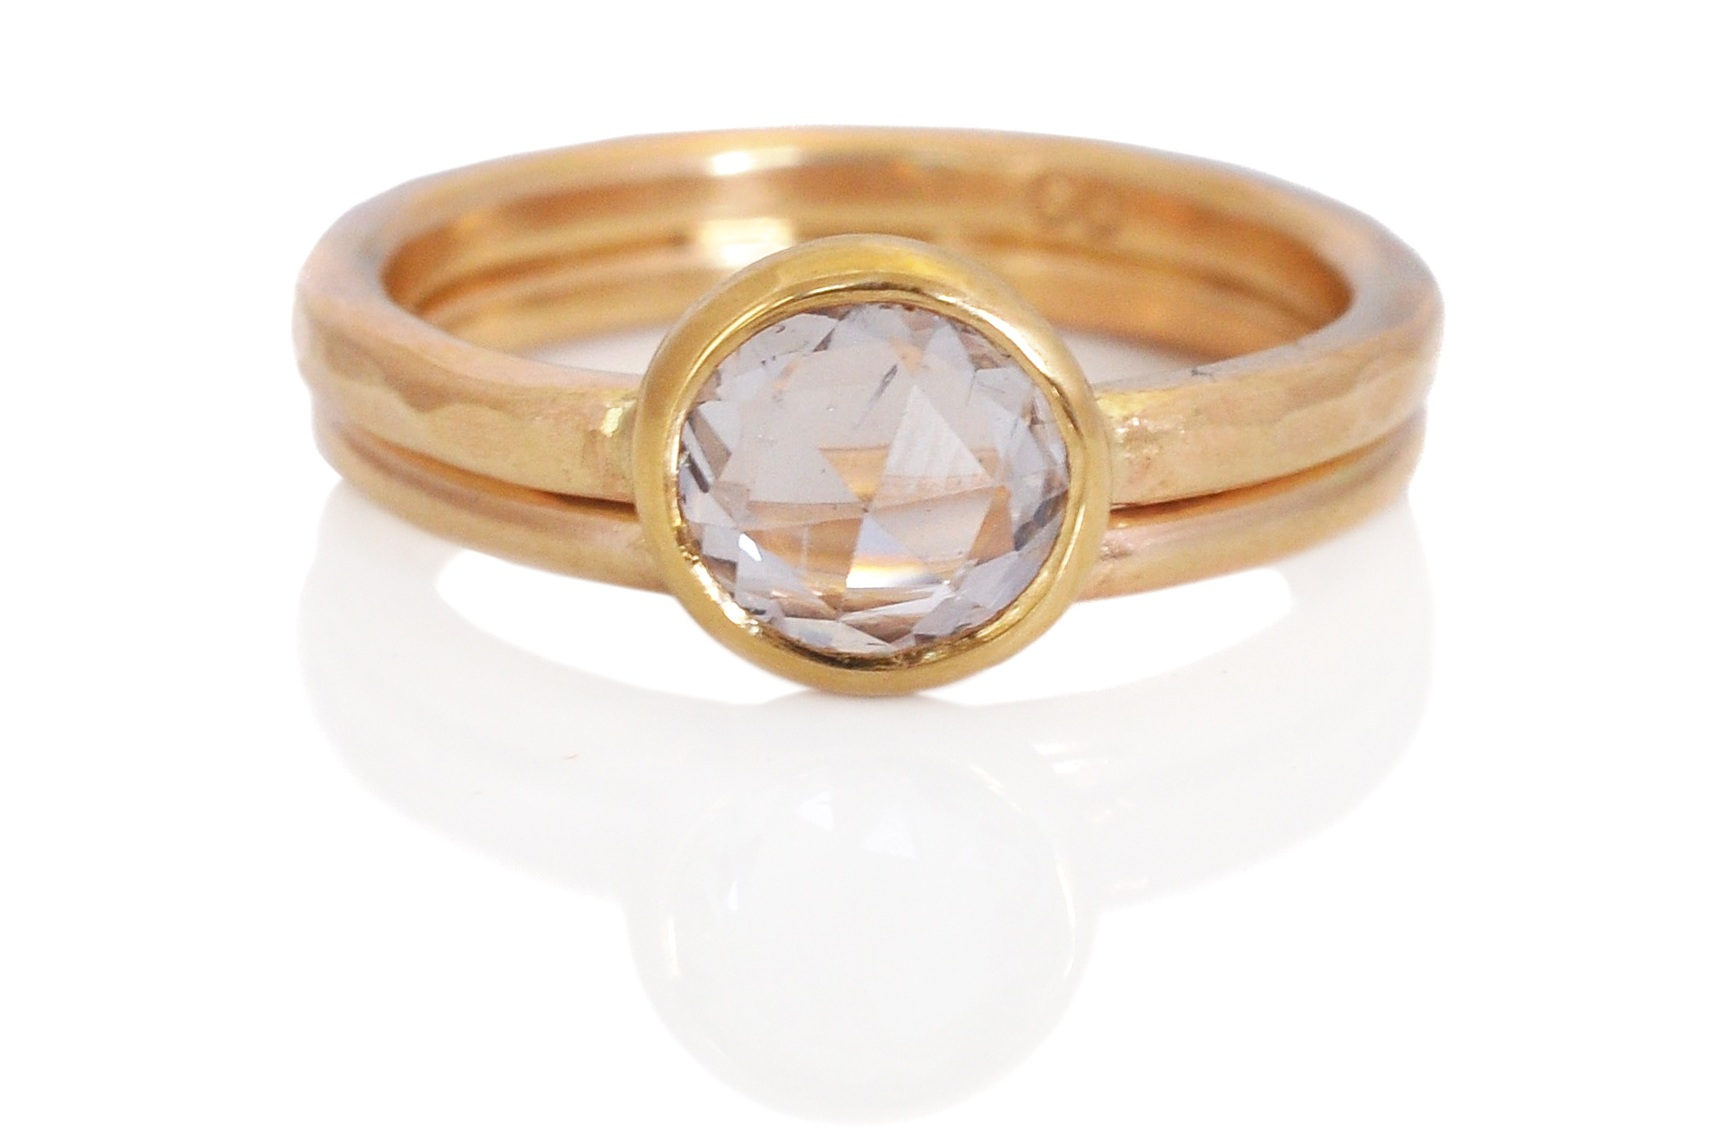 A pale pink rose cut sapphire in 14k yellow gold with a facet hammered finish